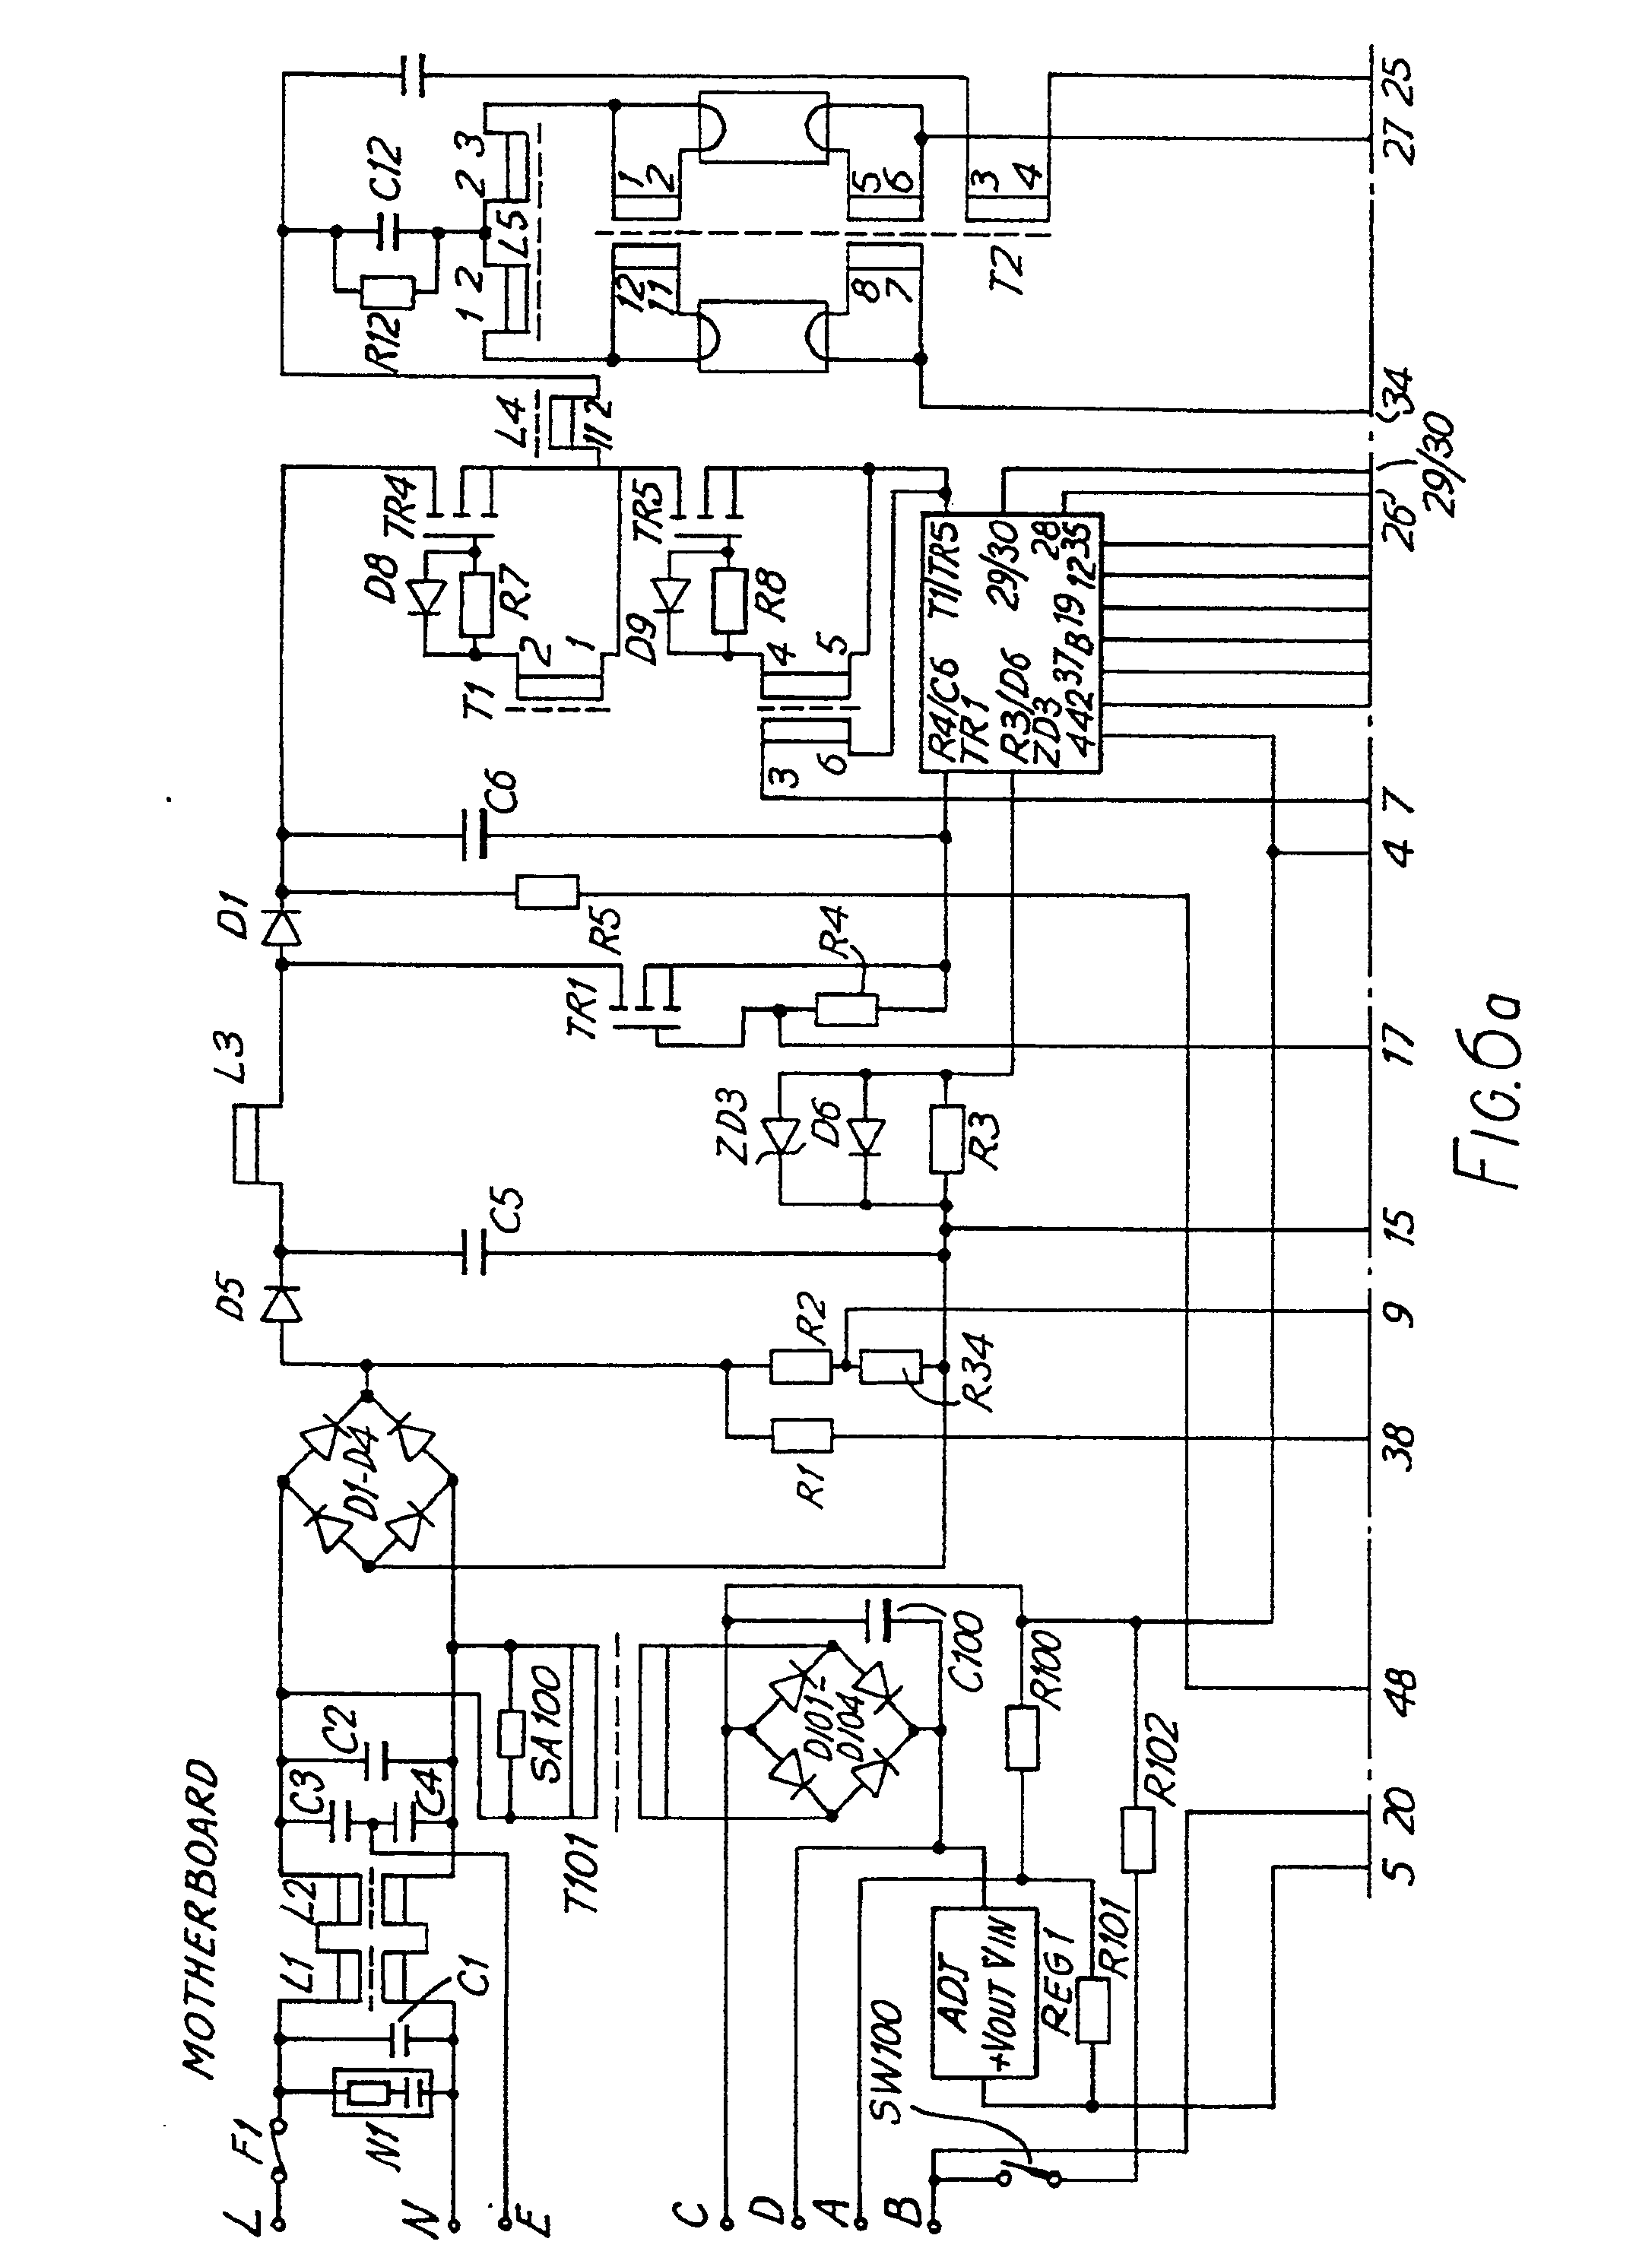 Imgf on Lutron Dimming Ballast Wiring Diagram